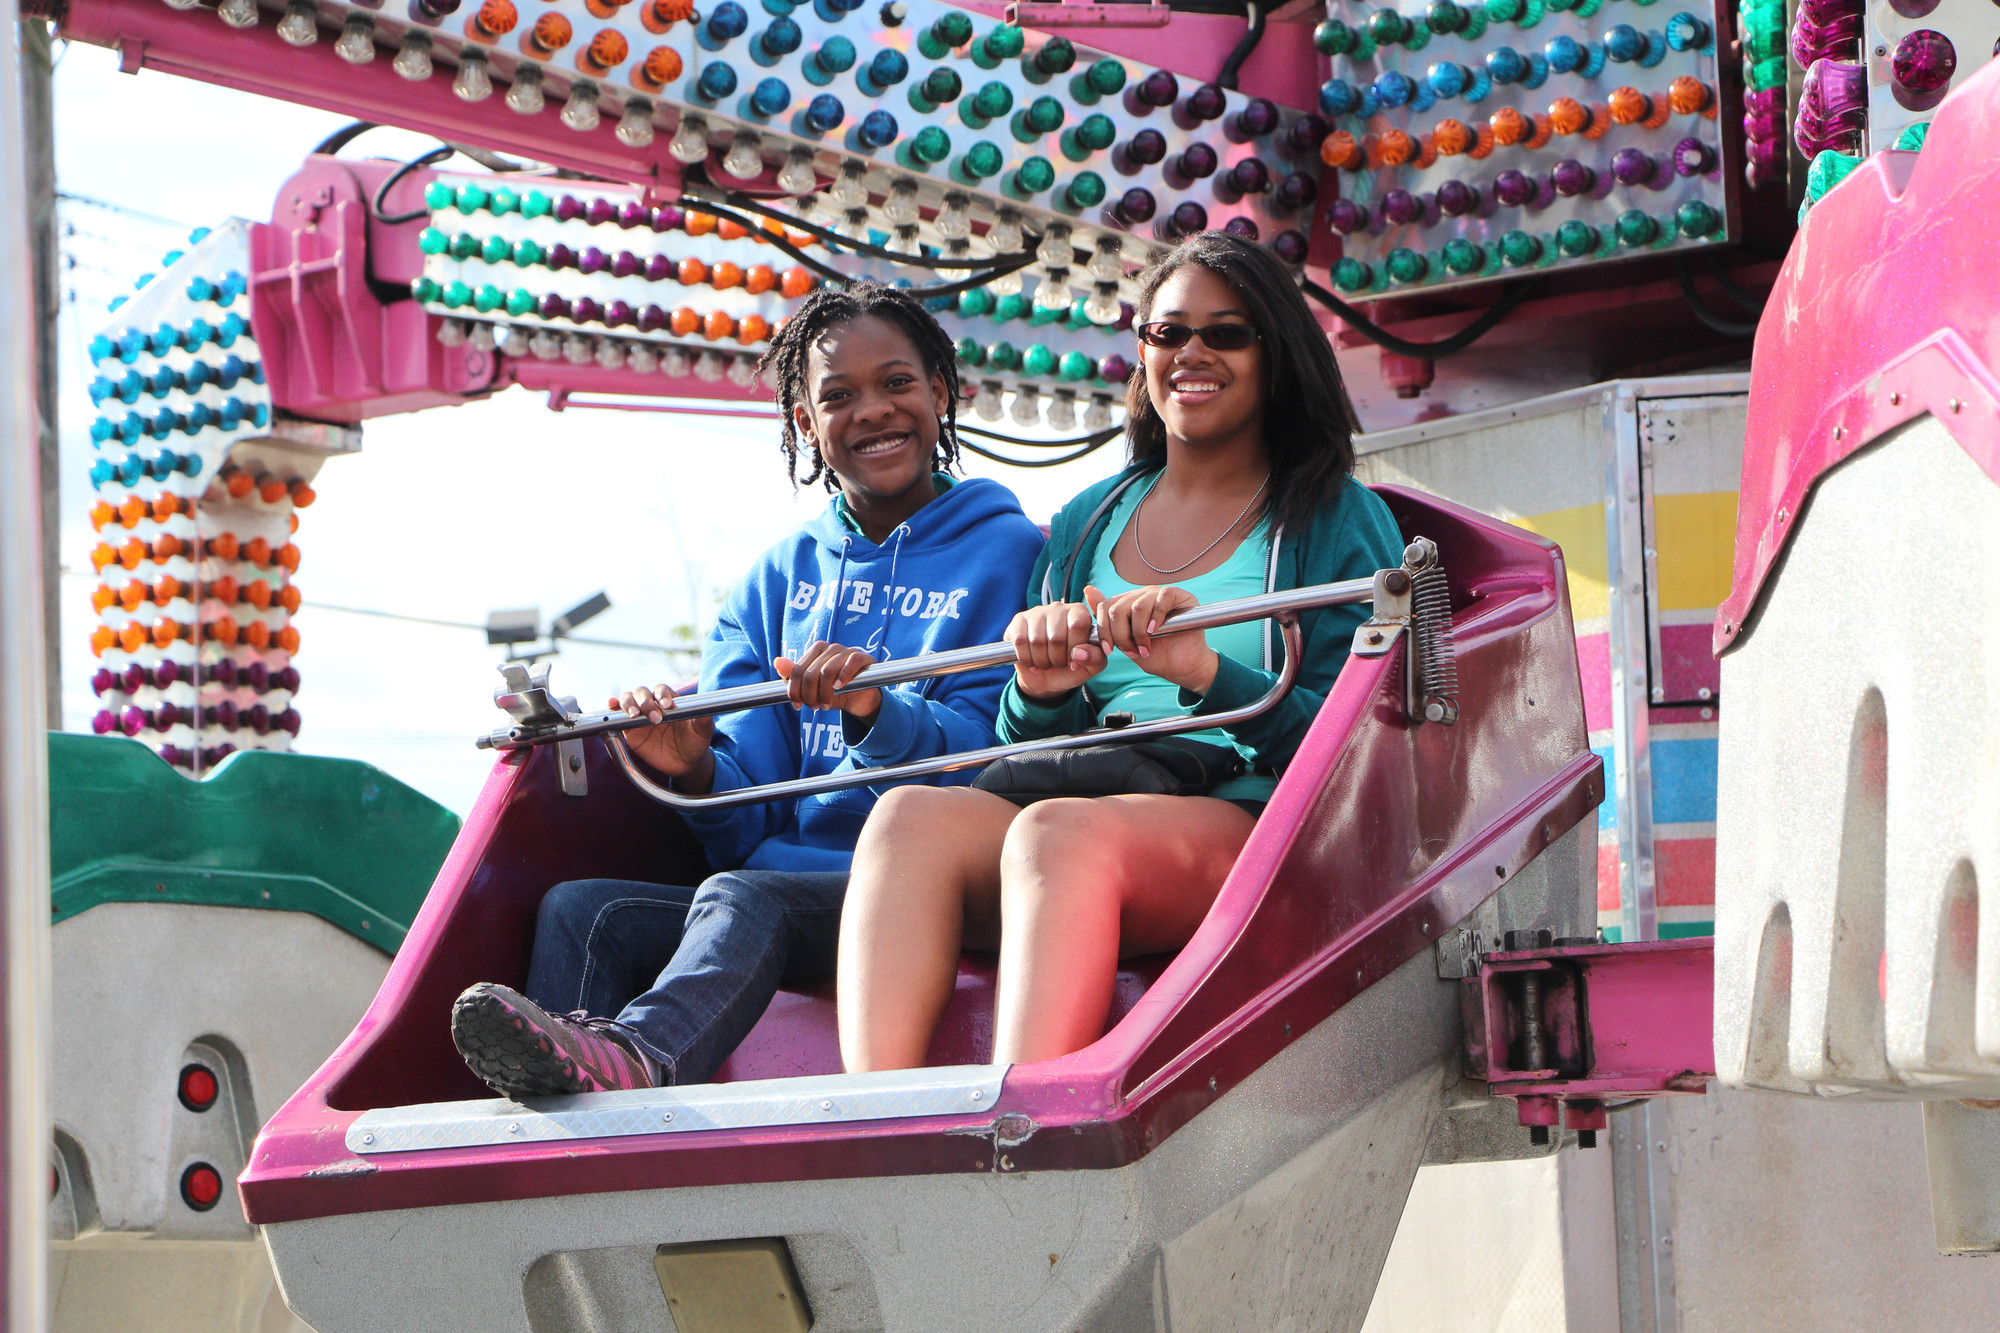 Mia Jean-Louis, 14, left, and Joelle Nicolas, 14, took a ride on the Twister last weekend under sunny skies.